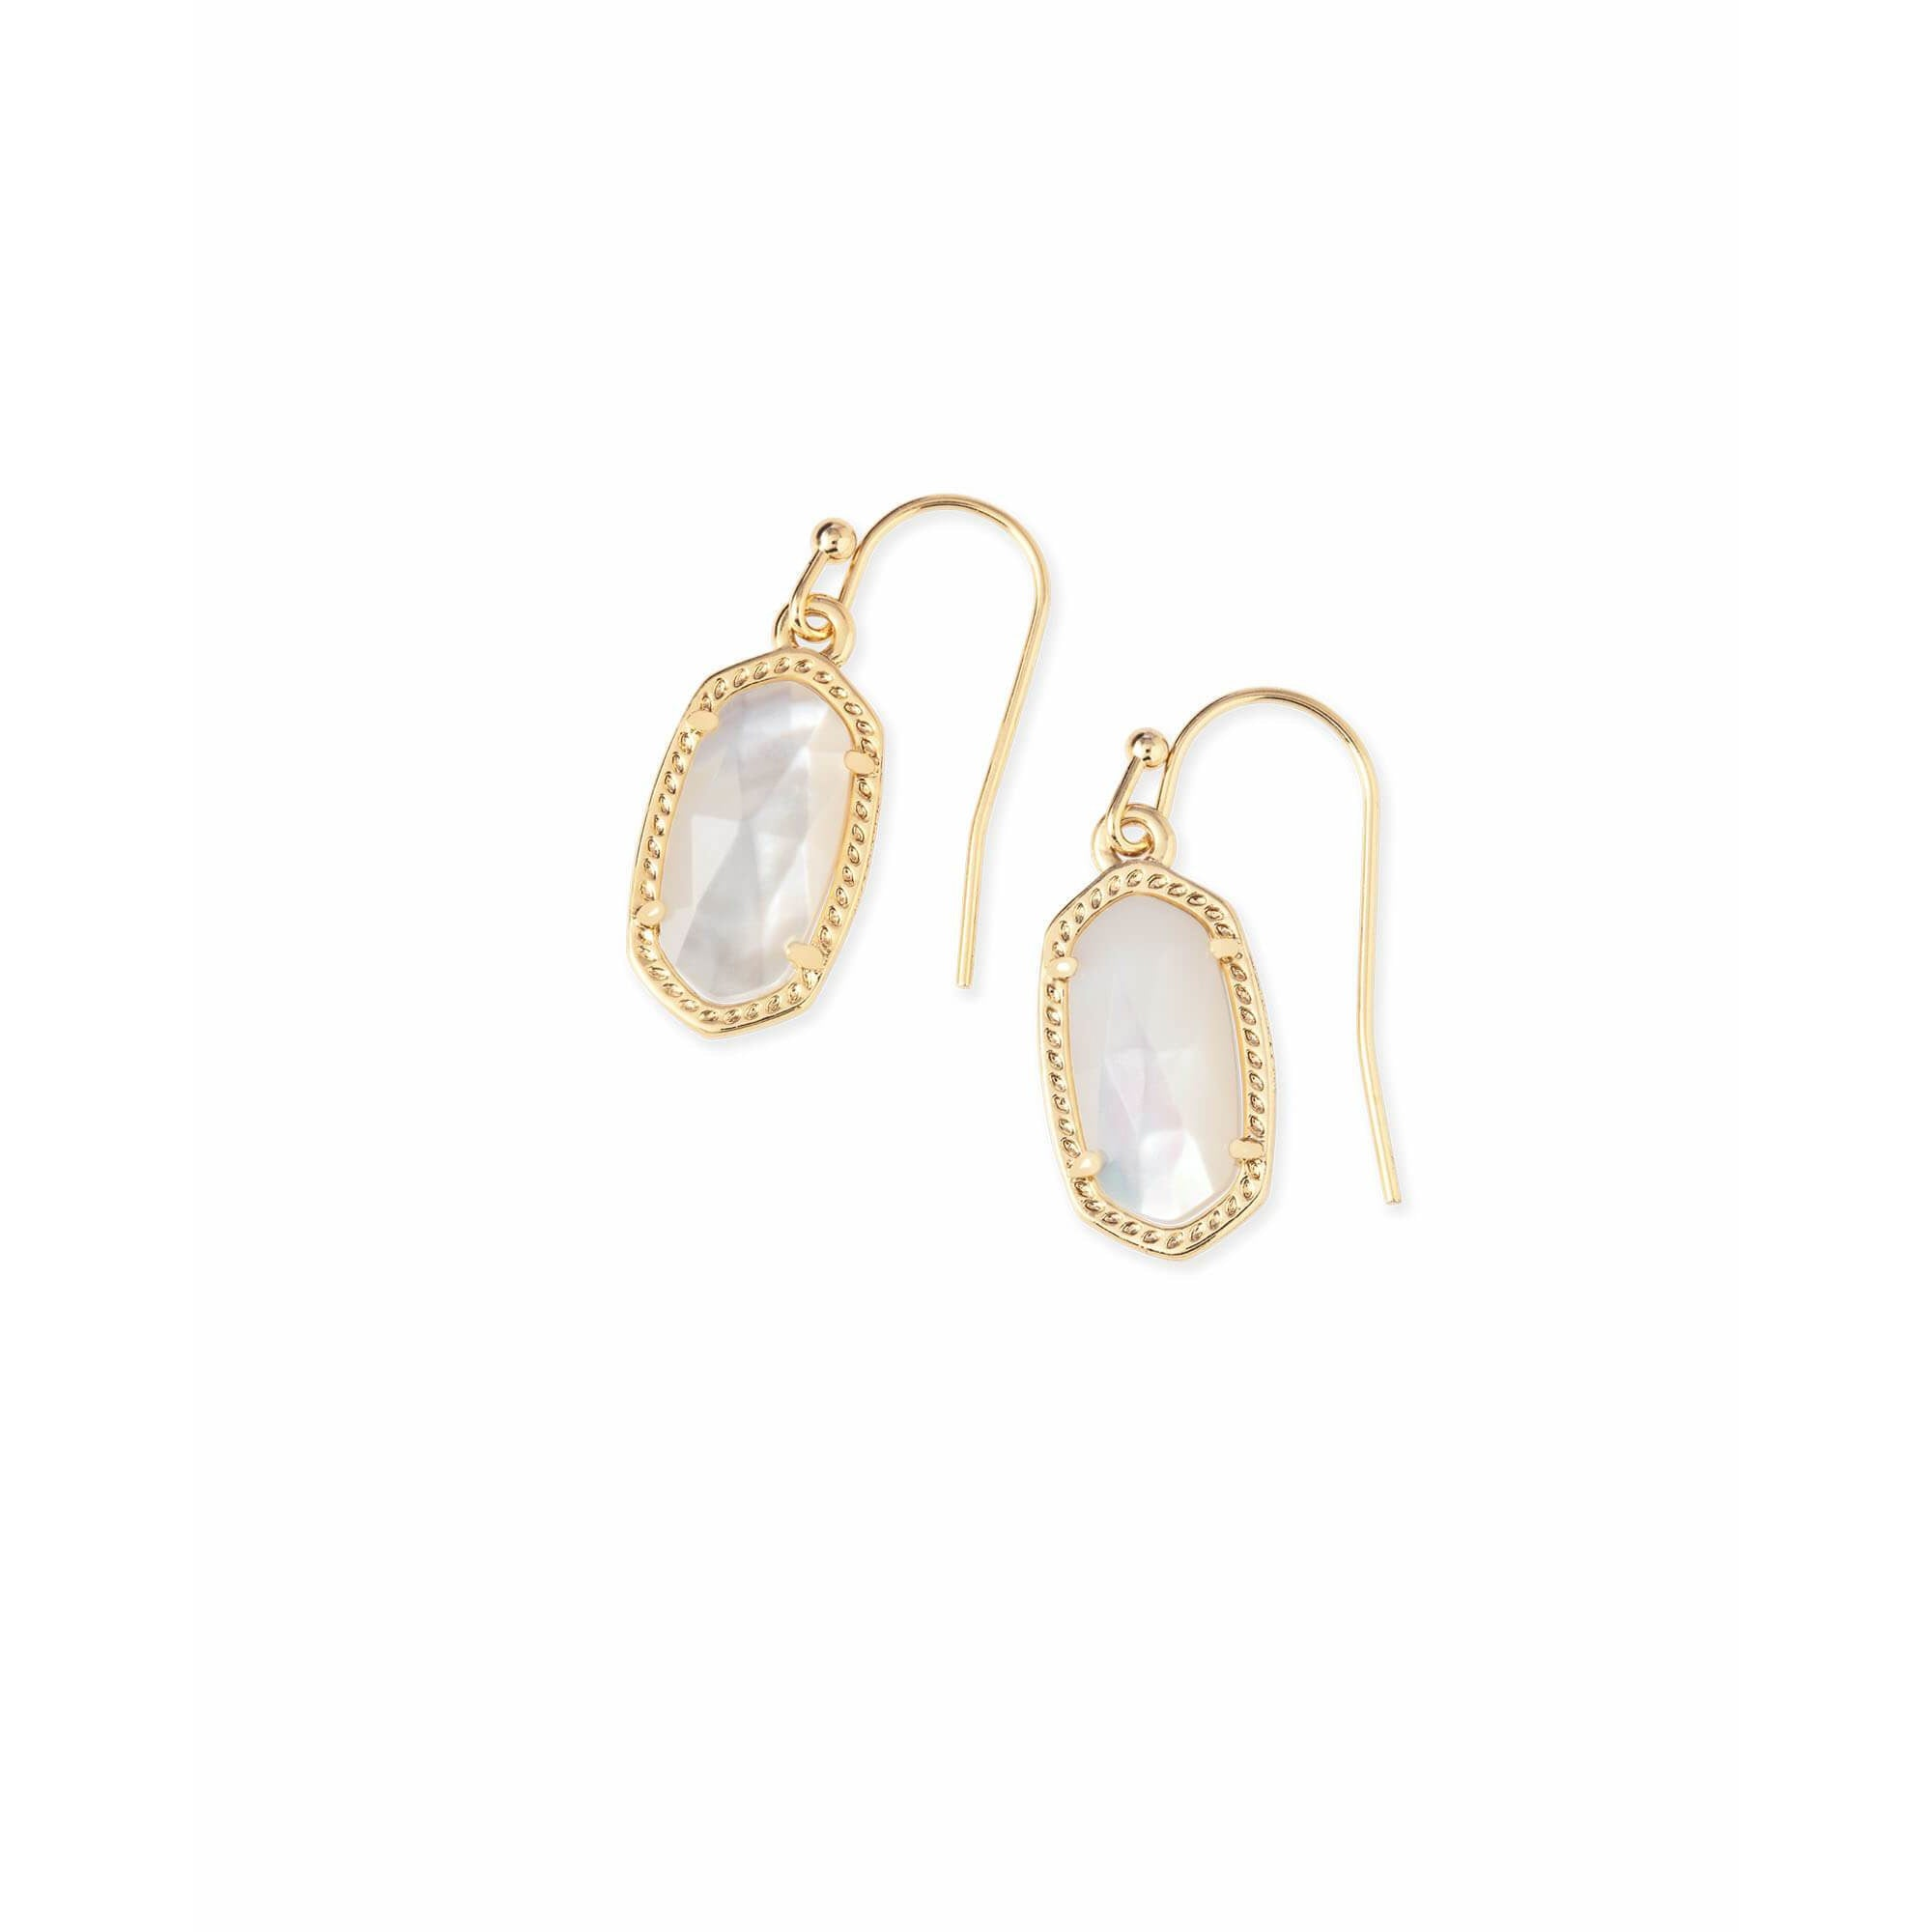 Kendra Scott - Lee Gold Drop Earrings in Ivory Pearl, Front View